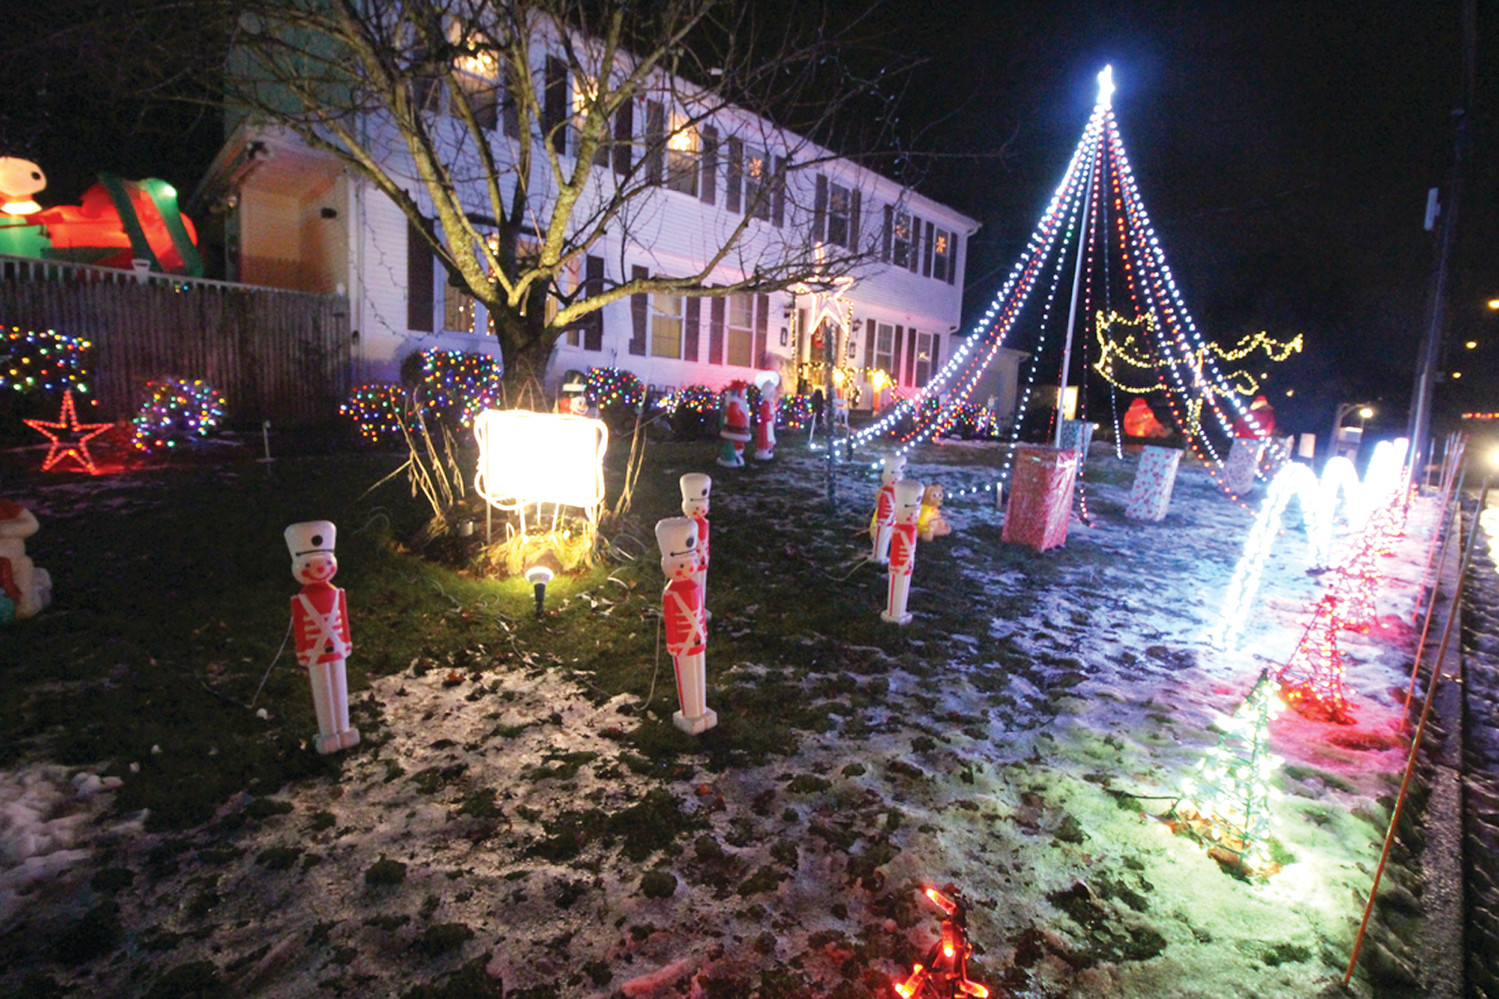 COWESETT SHOW: Everett Lewis says that his family's light display in front of their home on Shenandoah Road is the best they done in 21 years. It's worth a visit.